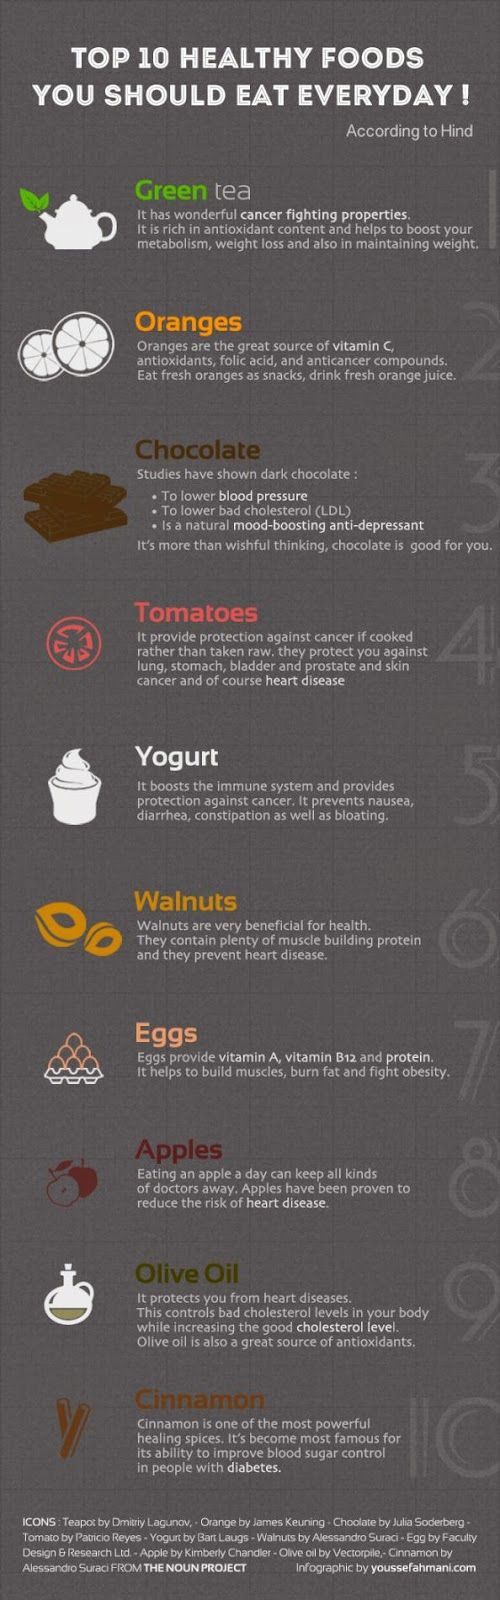 Top 10 Healthy Foods You Should Eat Everyday